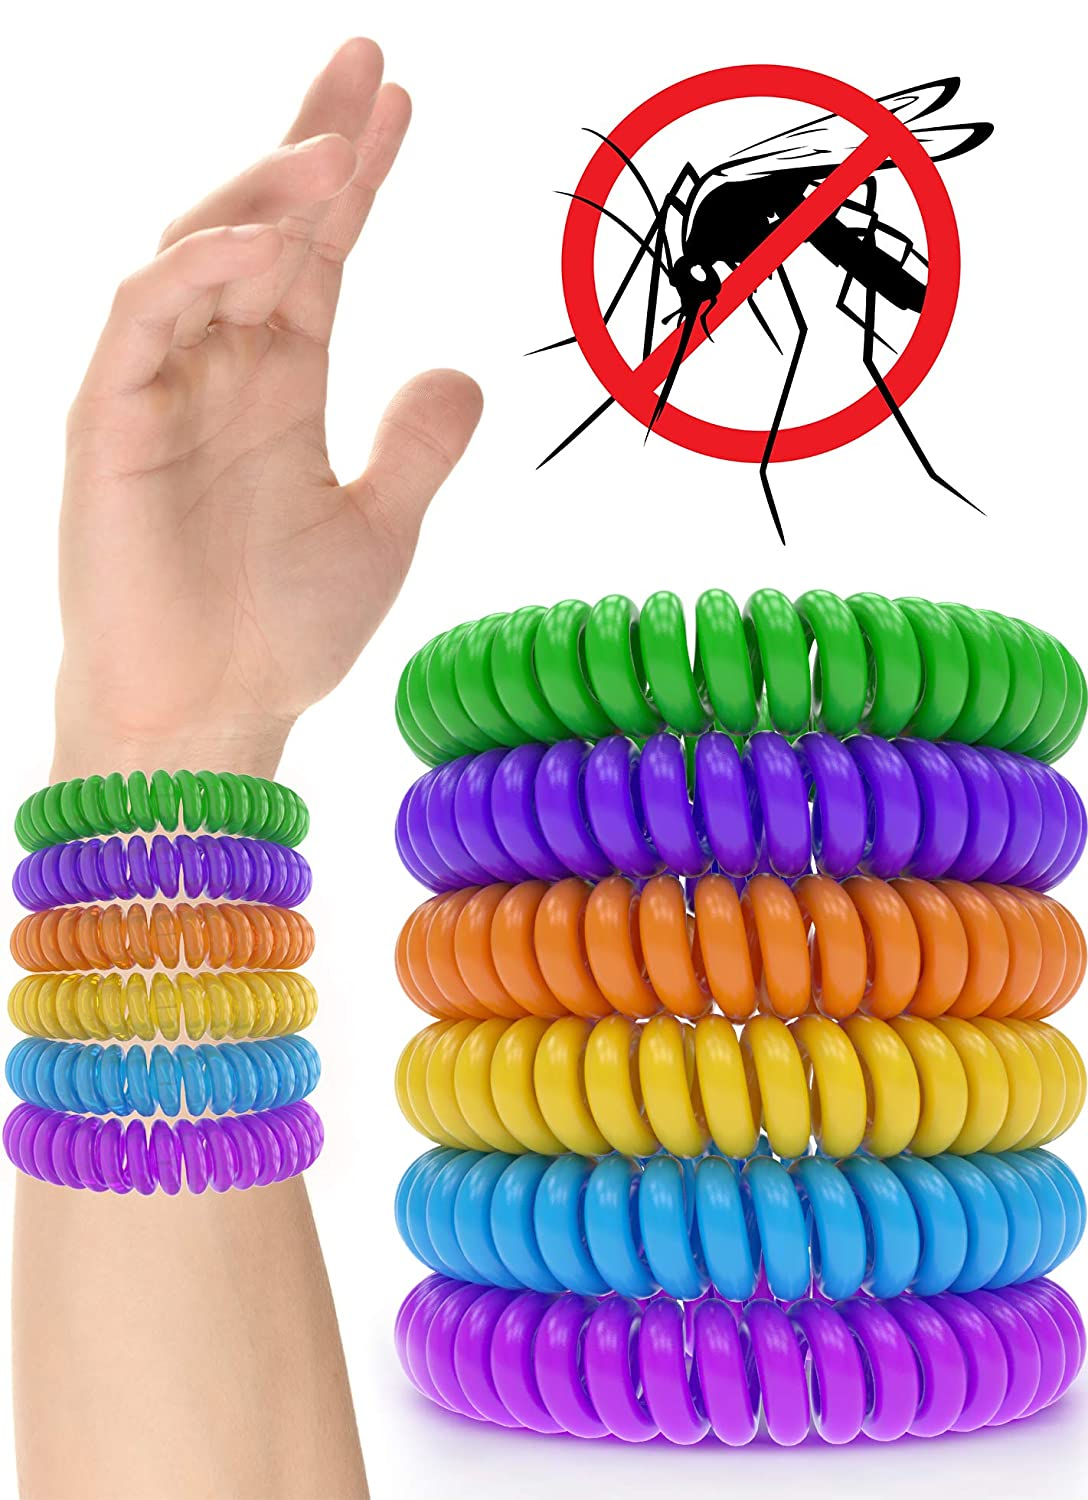 12 Pack Mosquito Repellent Bracelet Band - [320Hrs] of Premium Pest Control Insect Bug Repeller - Natural Indoor/Outdoor Insects - Best Products with NO Spray for Men, Women, Kids, Children iCooker 12-MOSQUITO-BAND